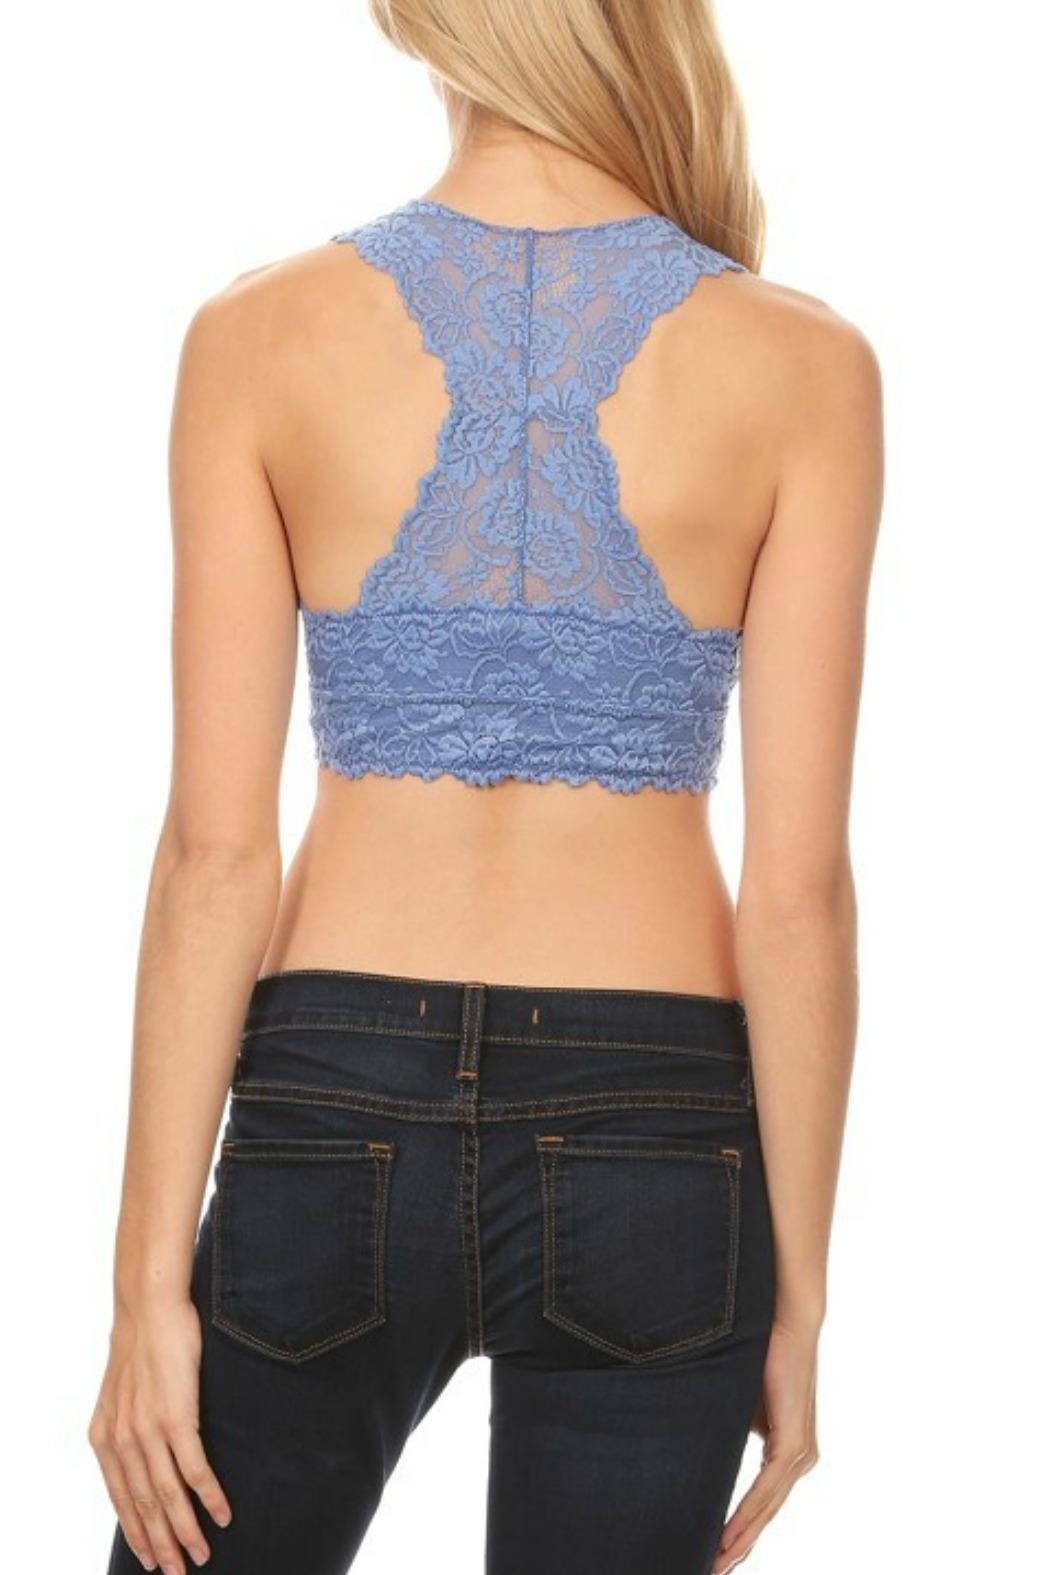 Anemone Lace Racerback Bralette - Front Full Image